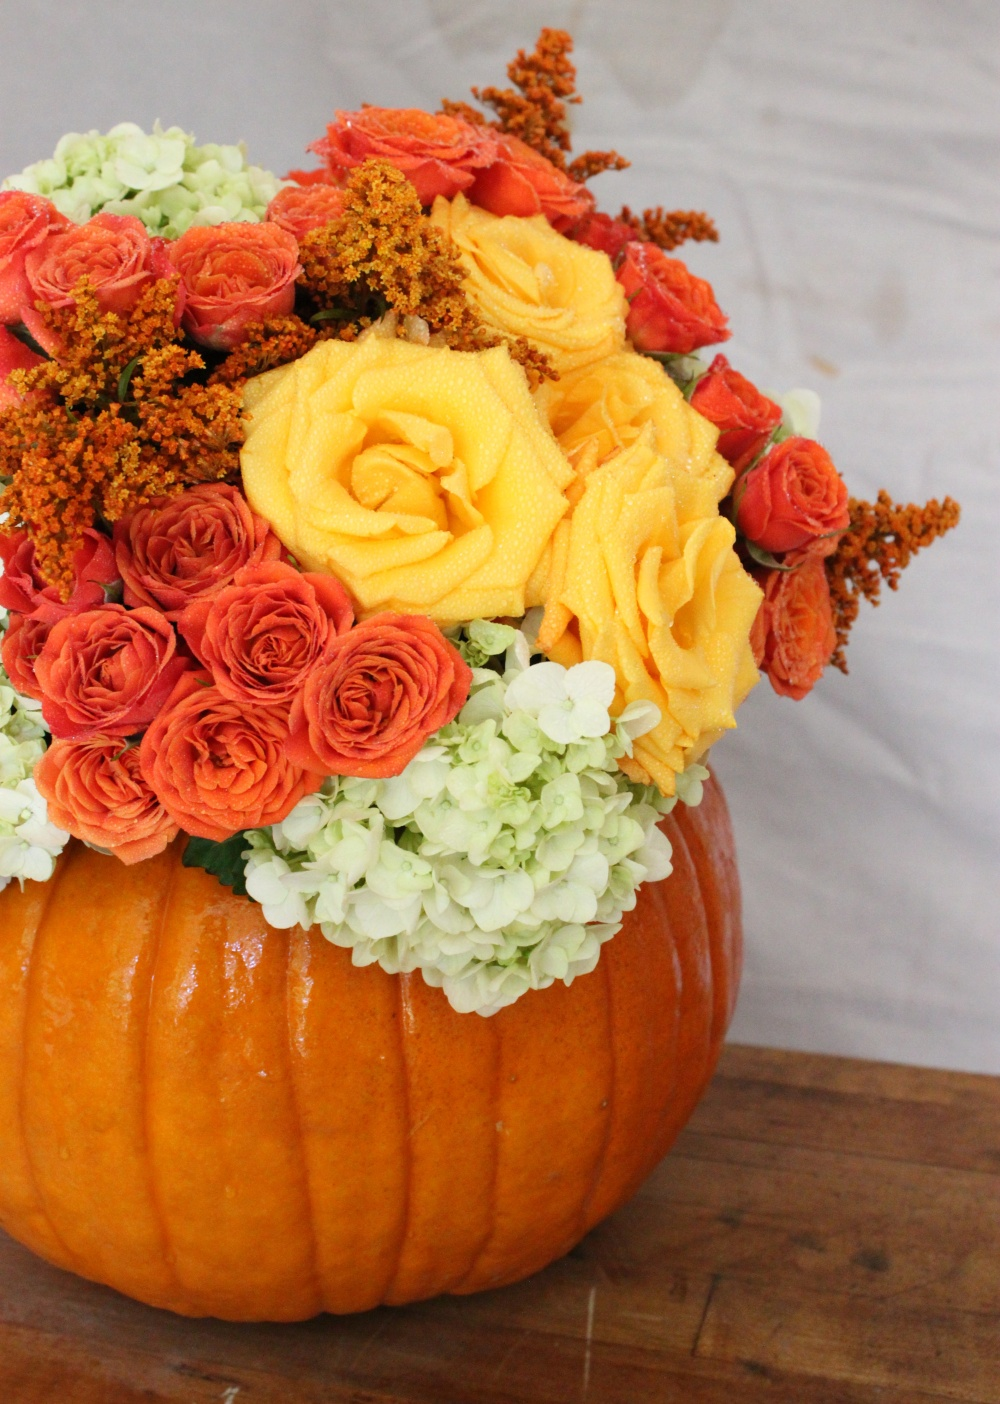 Arrangement in a Simple Store-Bought Pumpkin